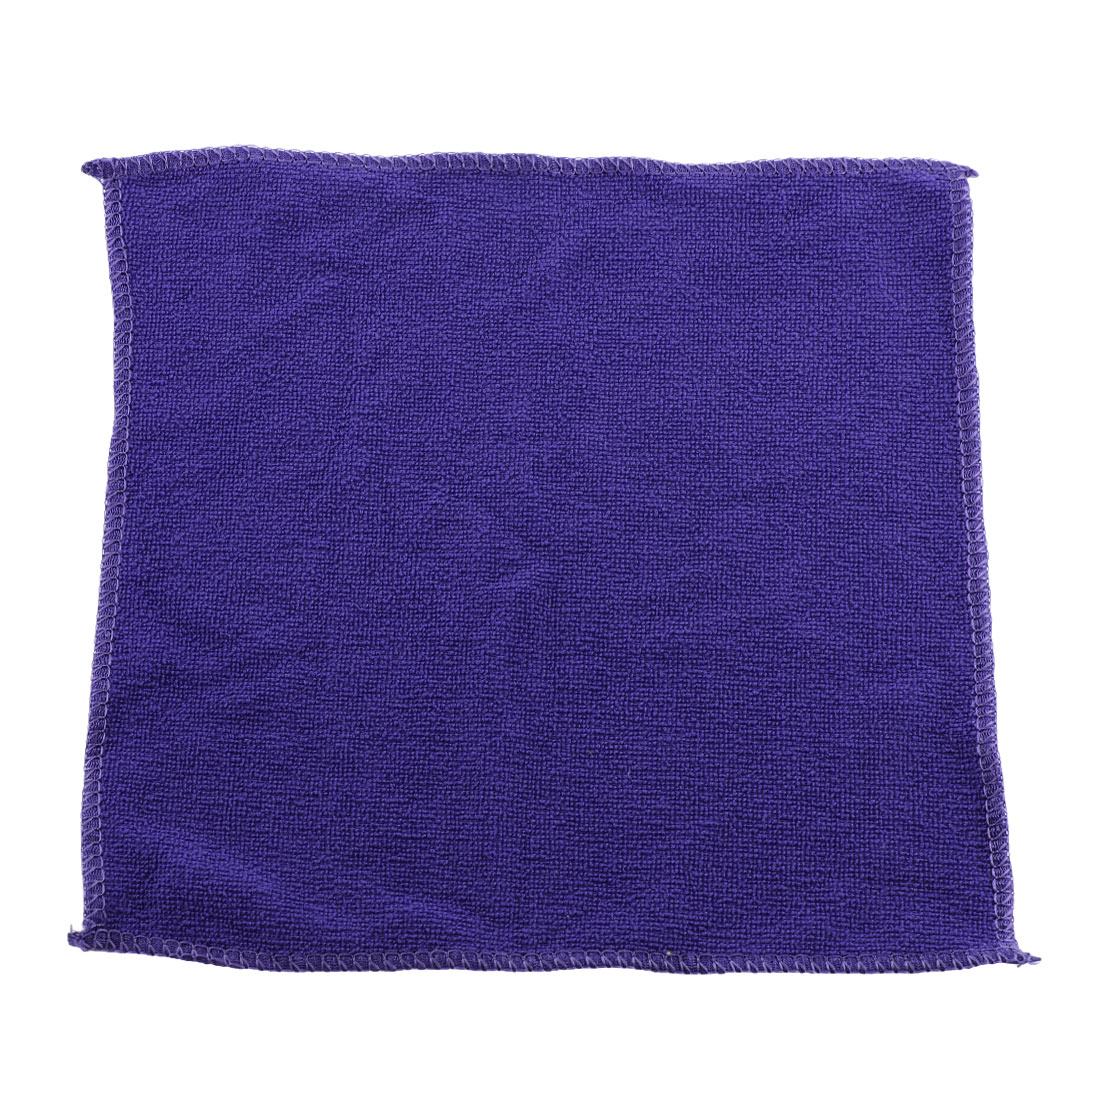 25cm x 25cm Purple Microfiber Water Absorbent Car Cleaning Drying Towels Wash Clean Cloth